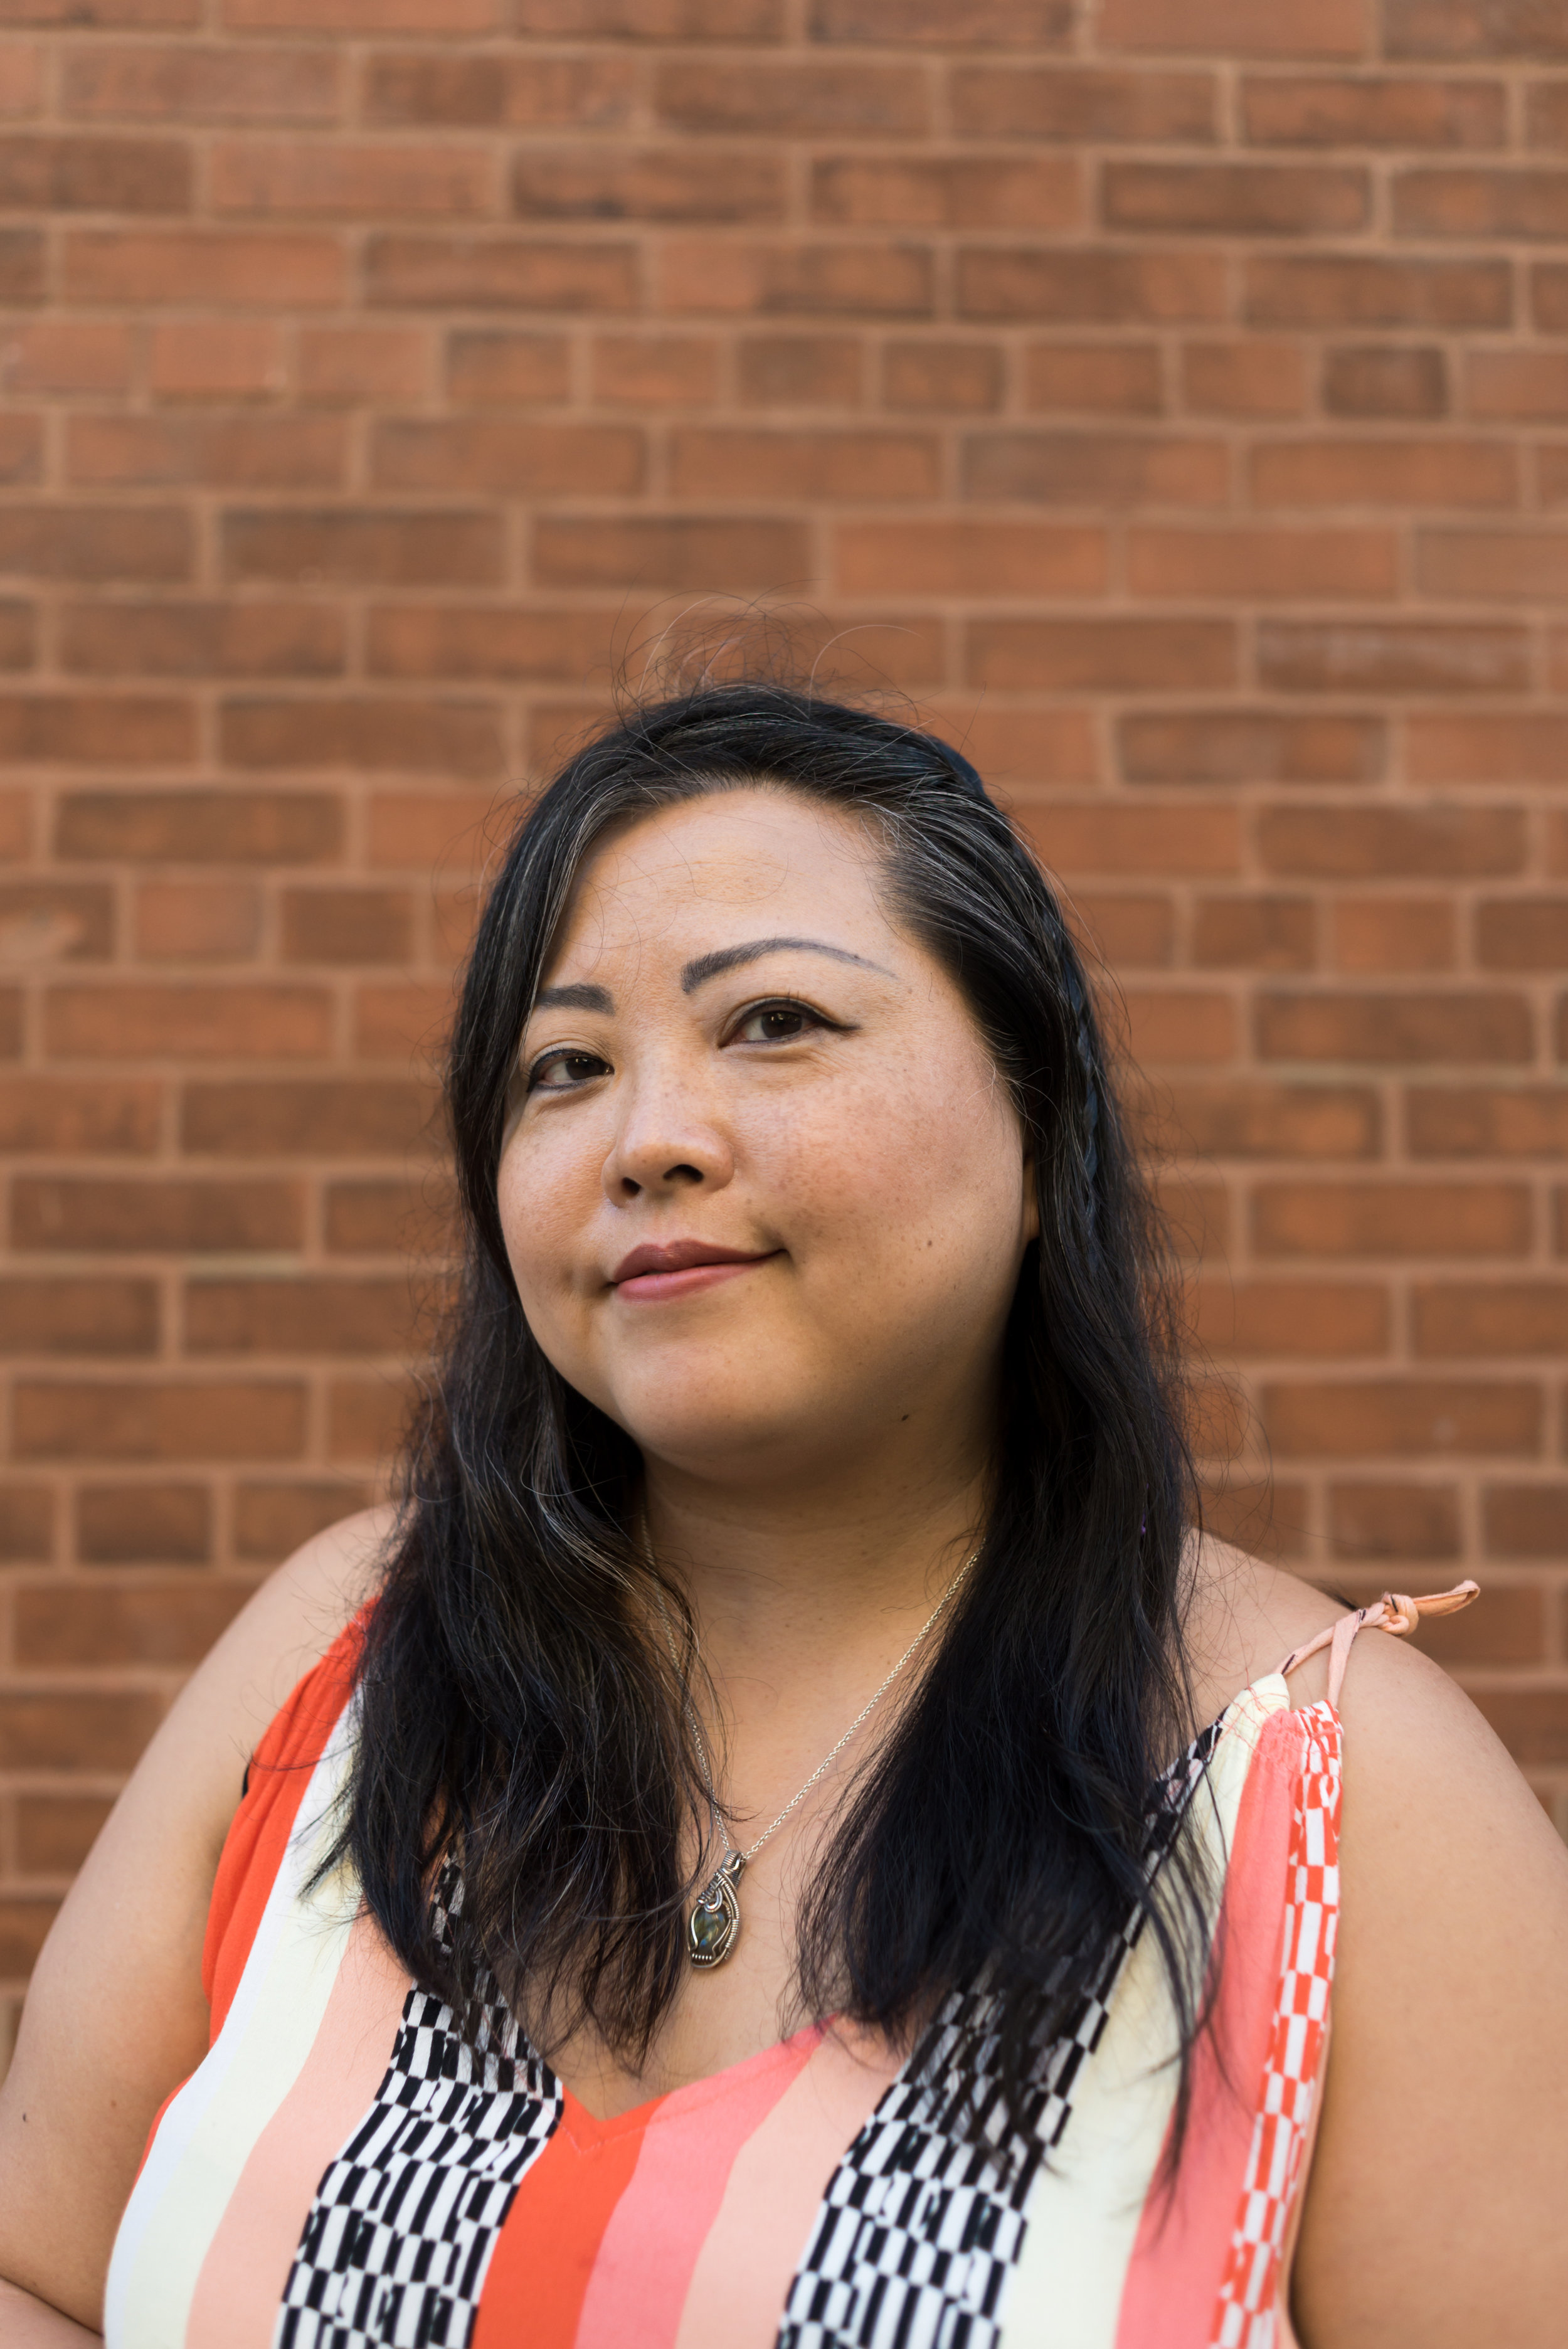 Image: A portrait of the artist Sarah-Ji standing in front of a brick wall wearing a patterned dress. She looks directly at the camera with a slight smile. Portrait captured by Ireashia Bennett.